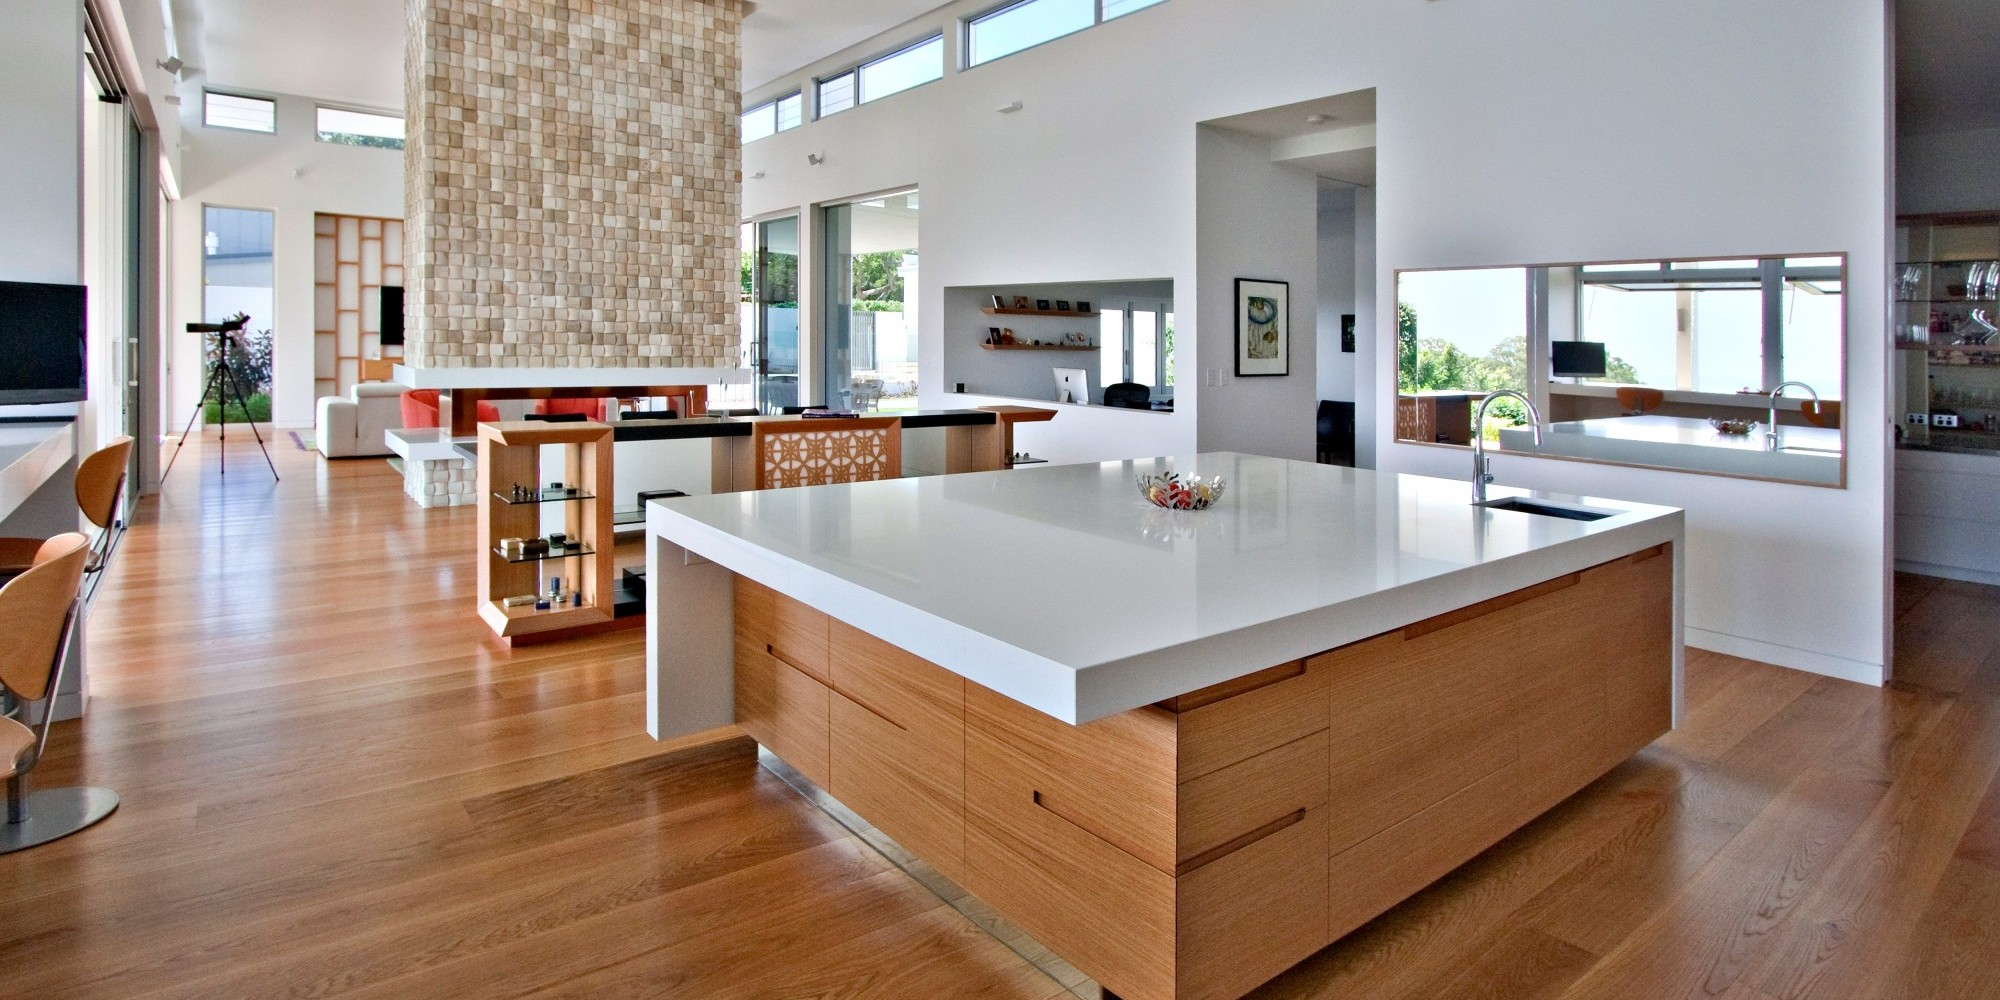 minka joinery Luxury kitchen